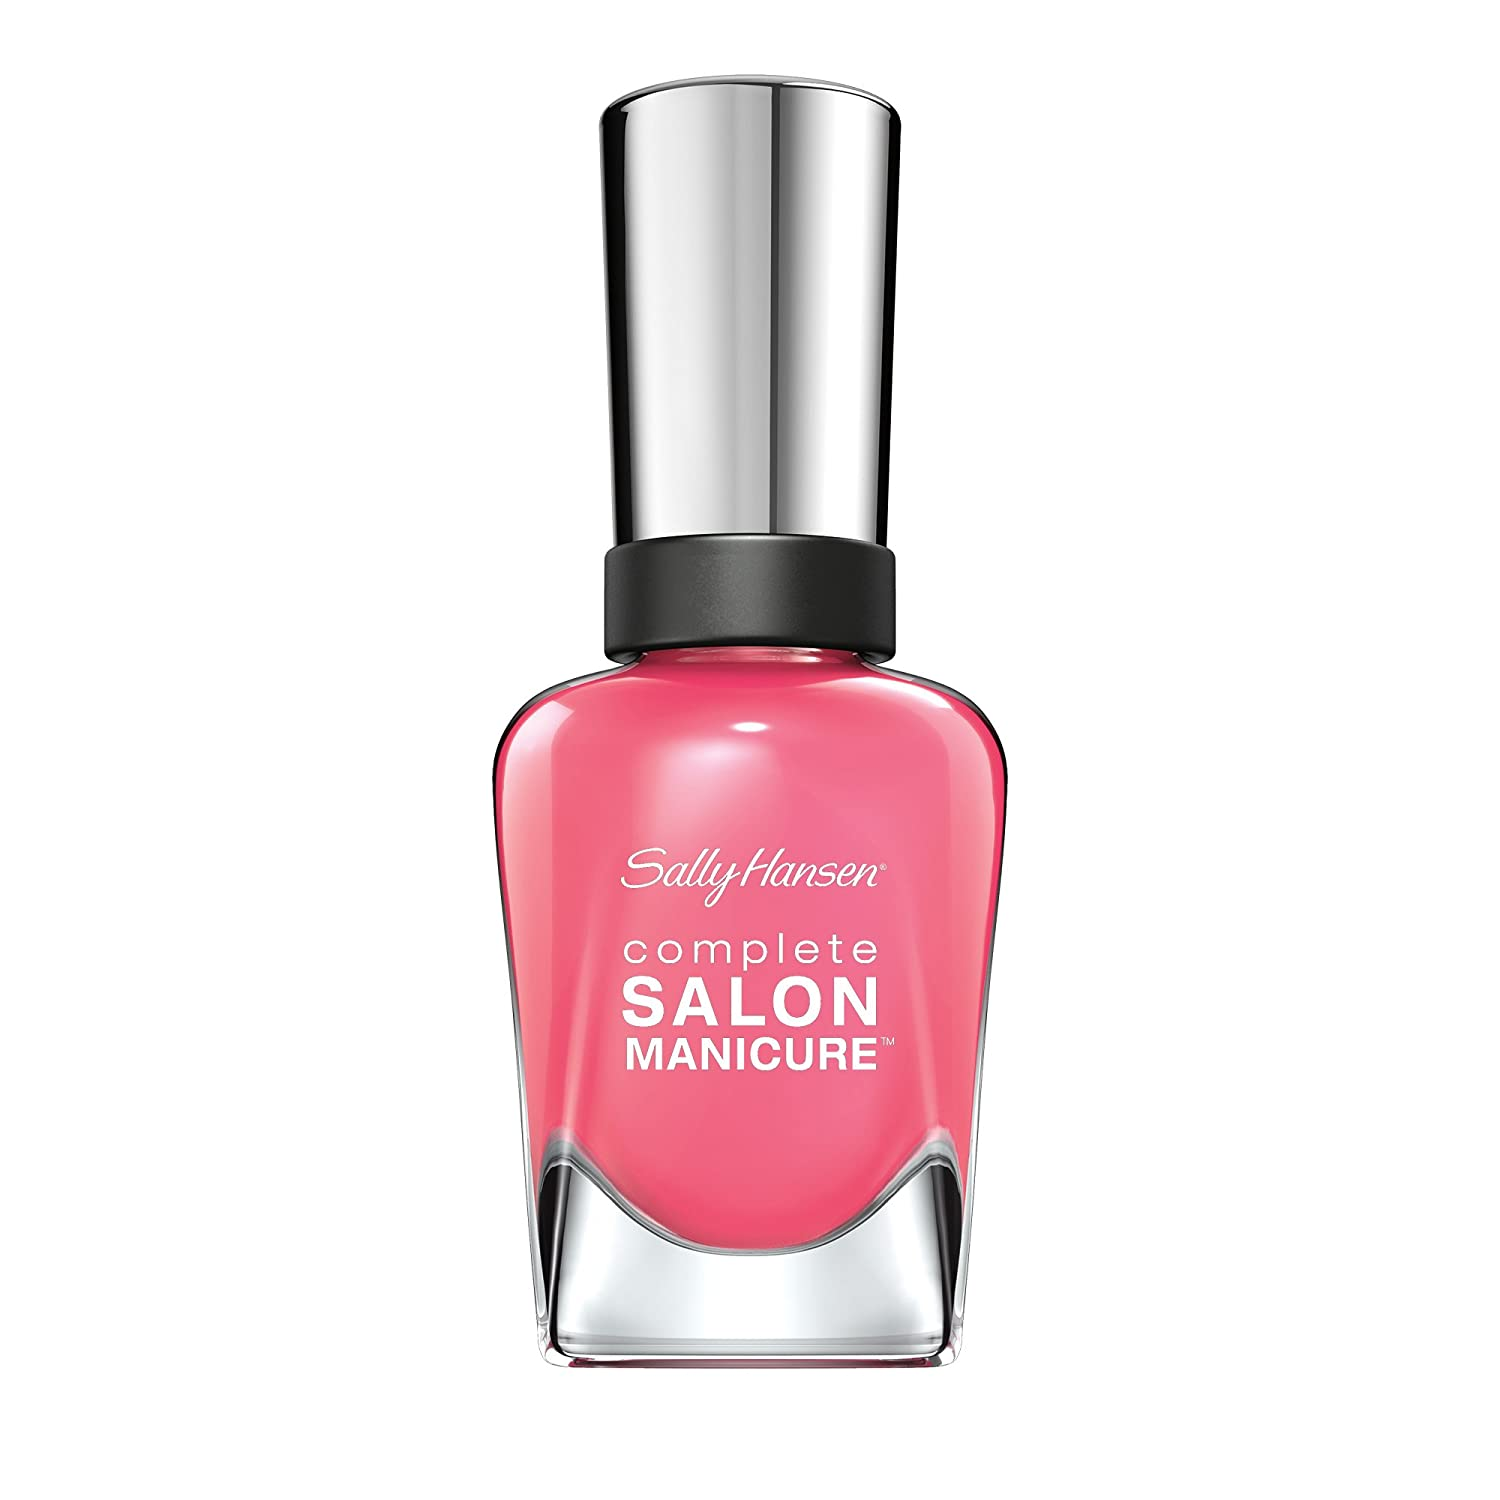 Sally Hansen Complete Salon Manicure, incolore 160 ( Shell We Dance ) , 14.7 ml 30023183160